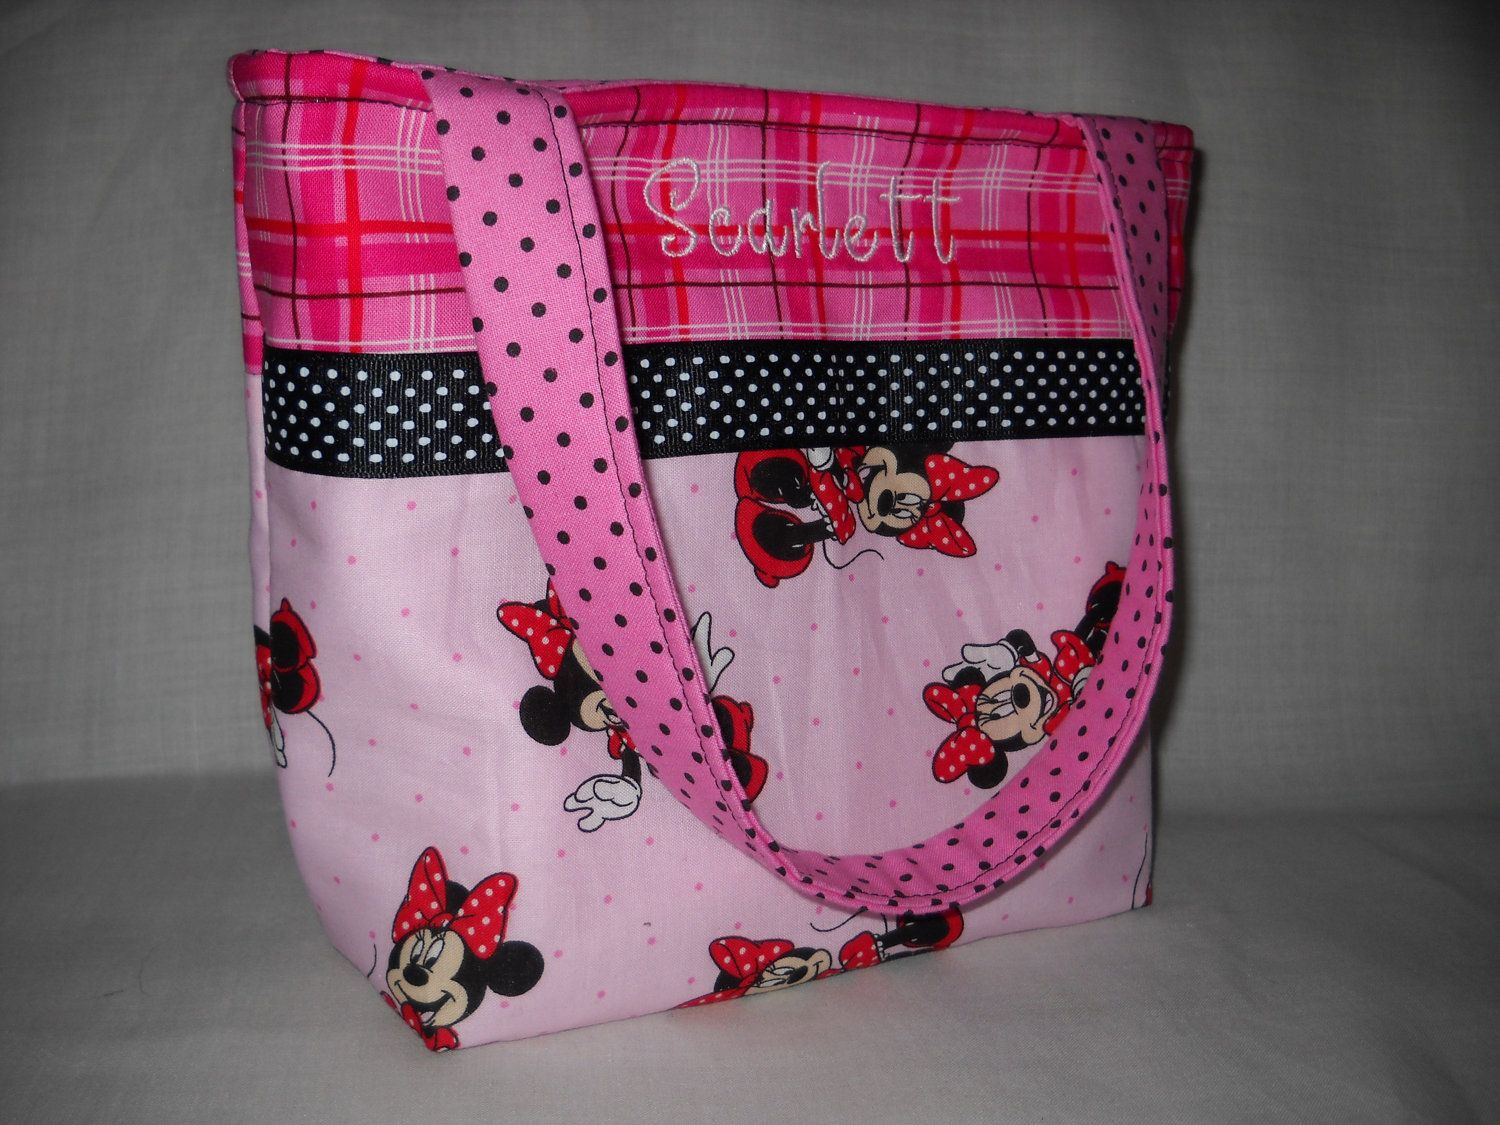 Little S Purse Small Childs Handbag Personalized Minnie Mouse Vogue Handmade Mini Tote Bag 15 00